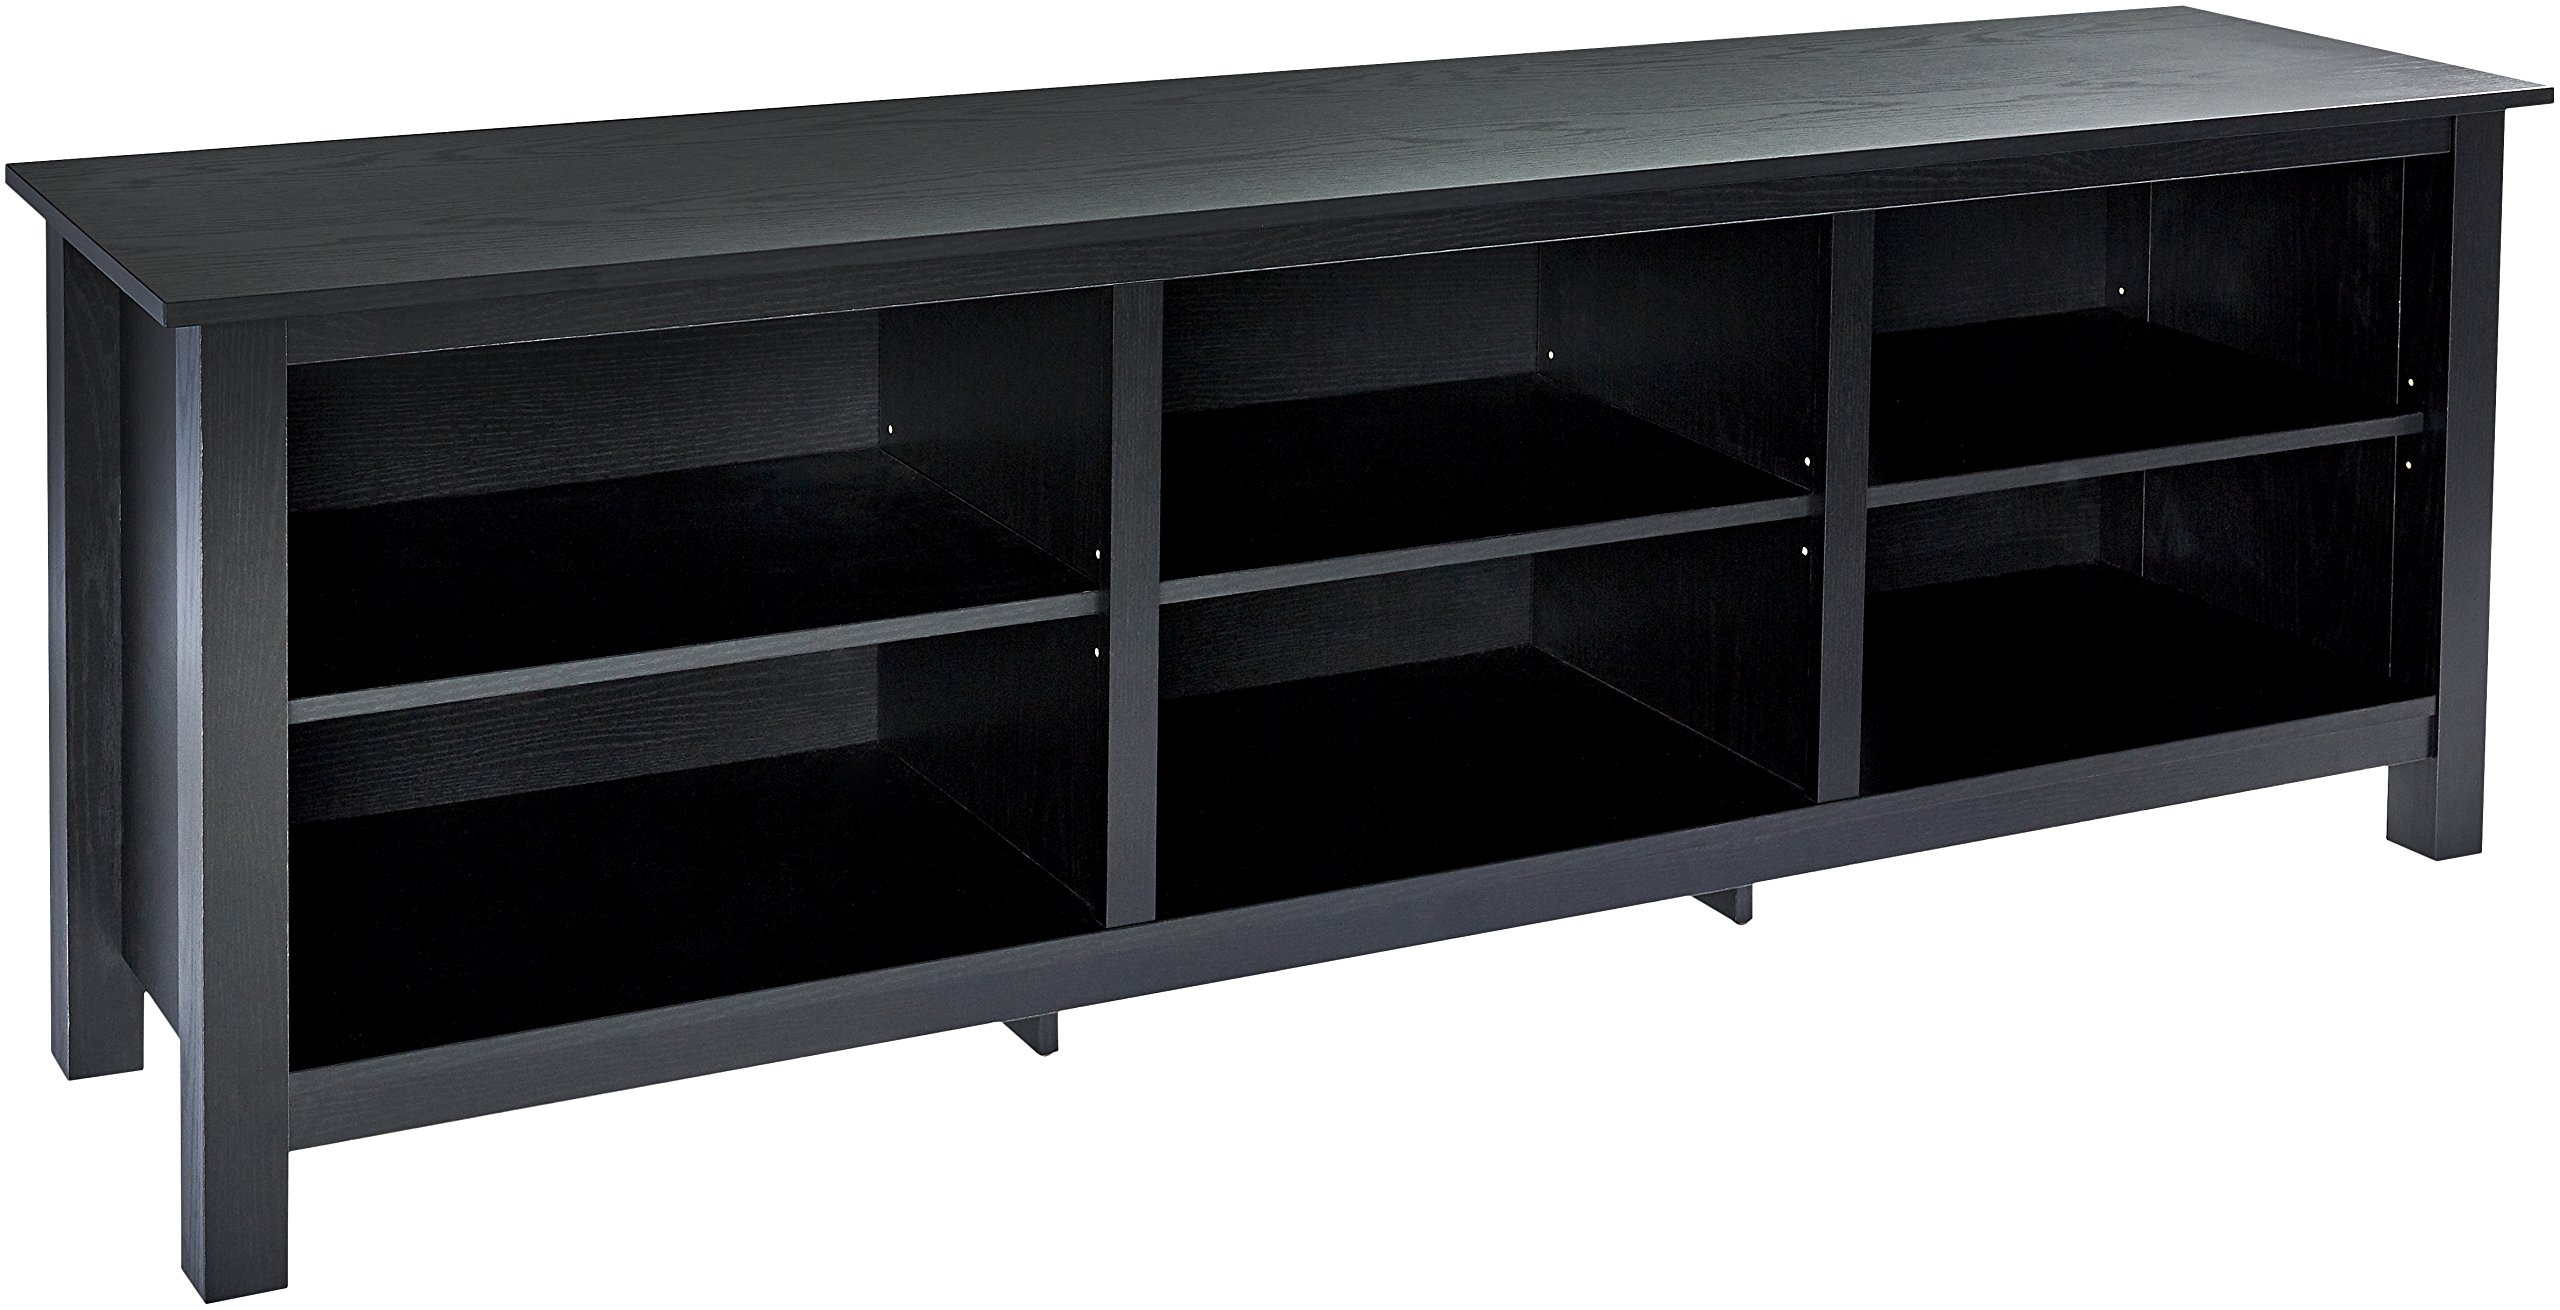 Rockpoint Argus Wood TV Stand Media Console, 70-Inch - Espresso Black by ROCKPOINT